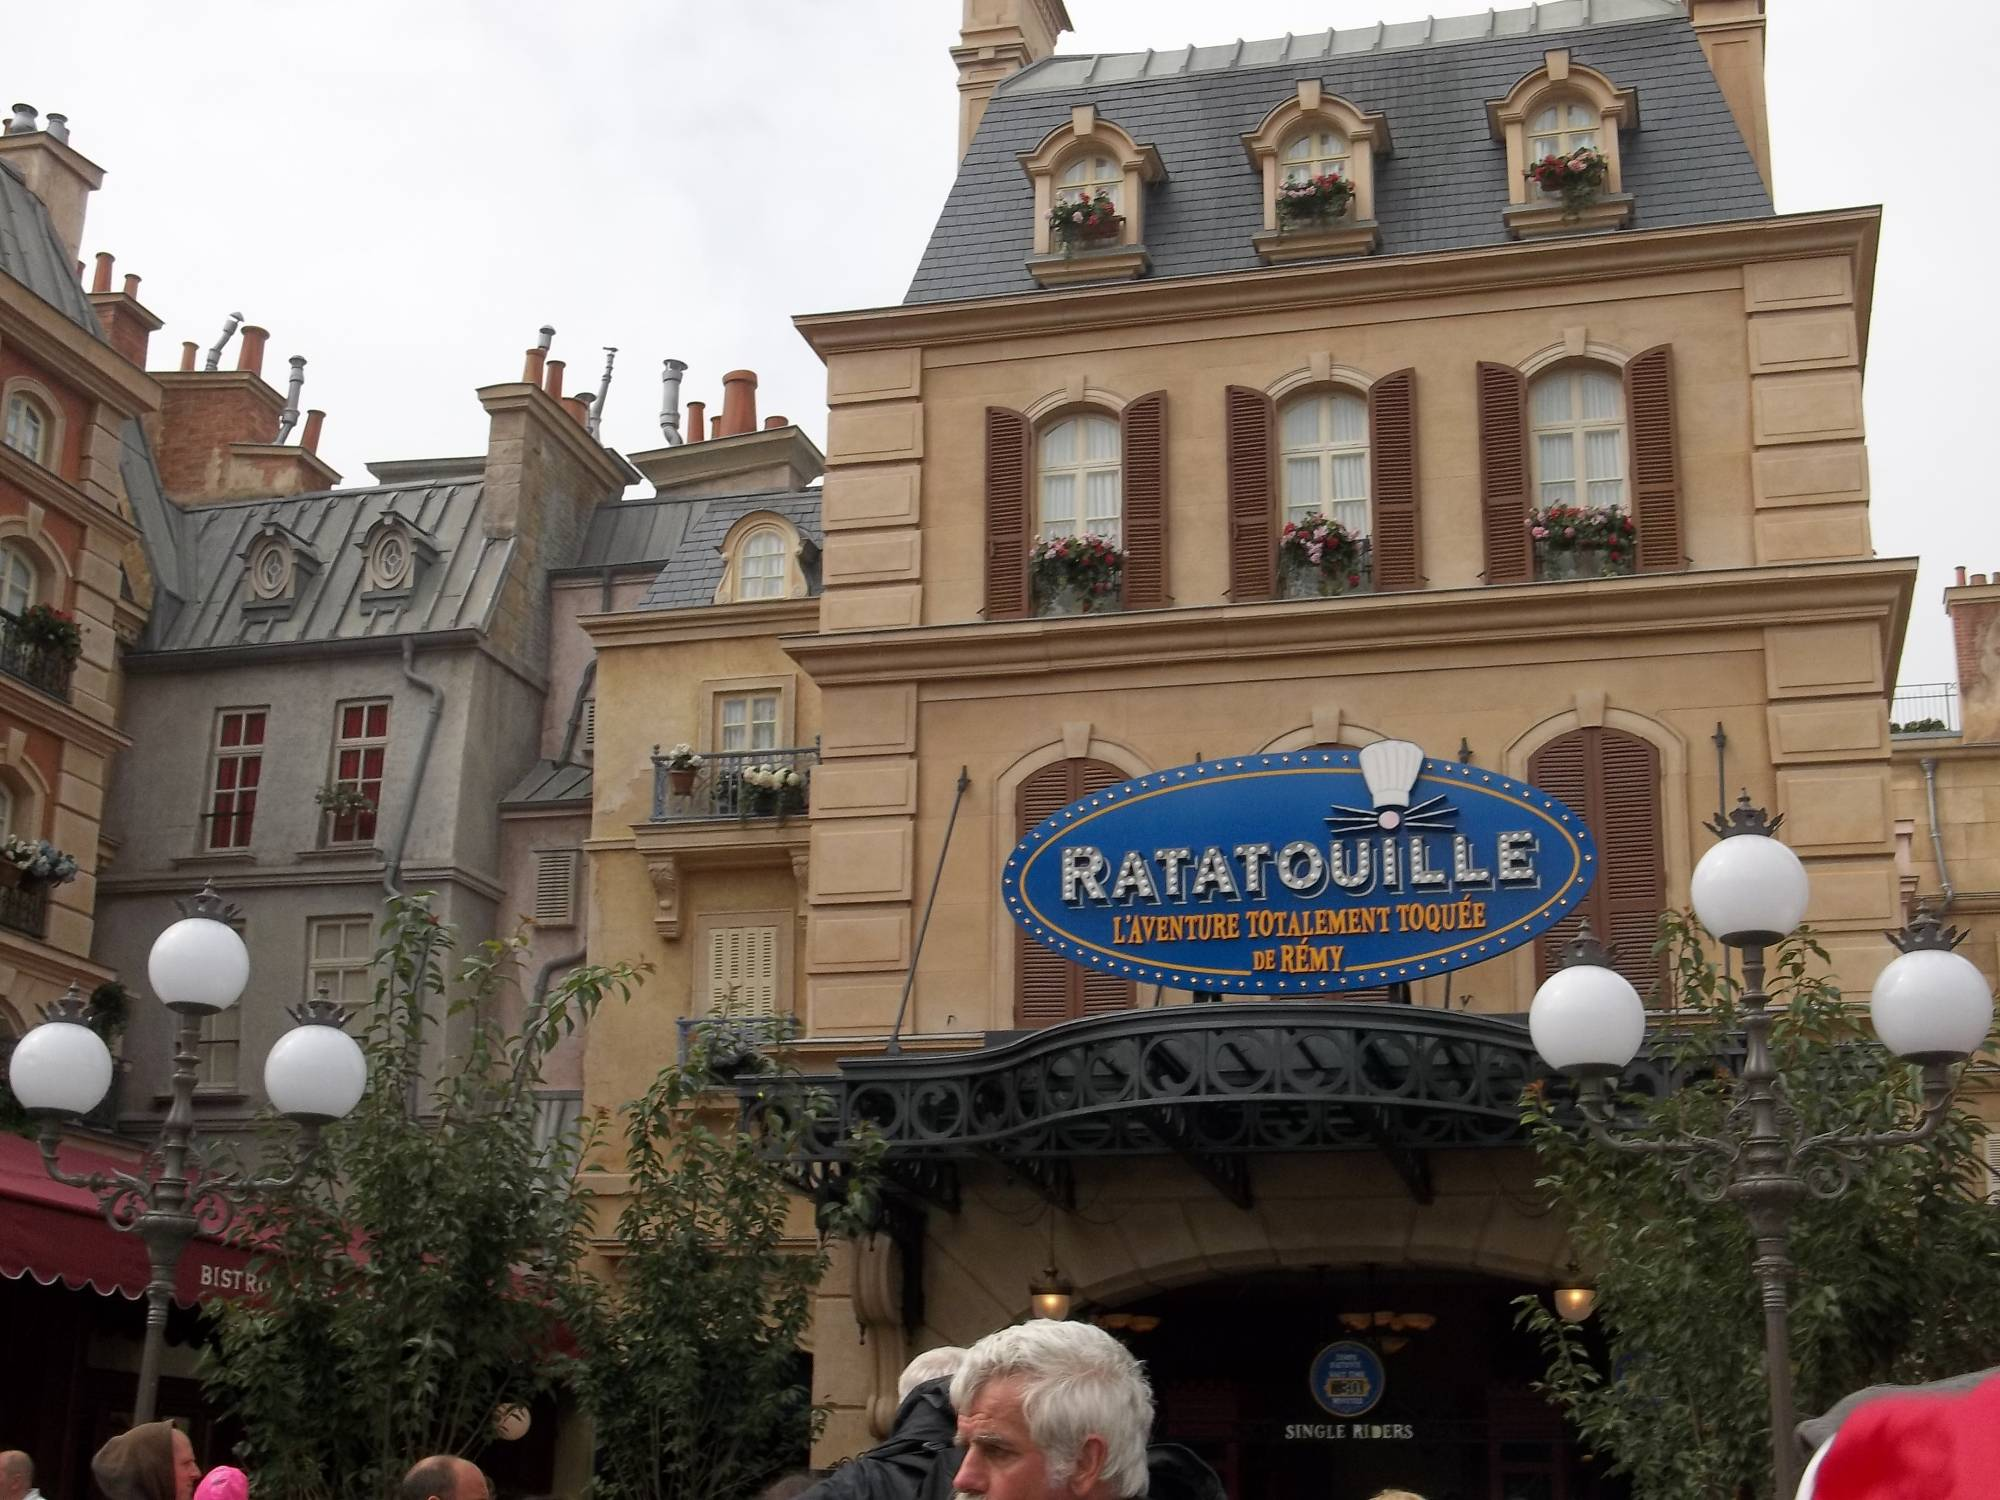 Disneyland Paris Ratatouille photo